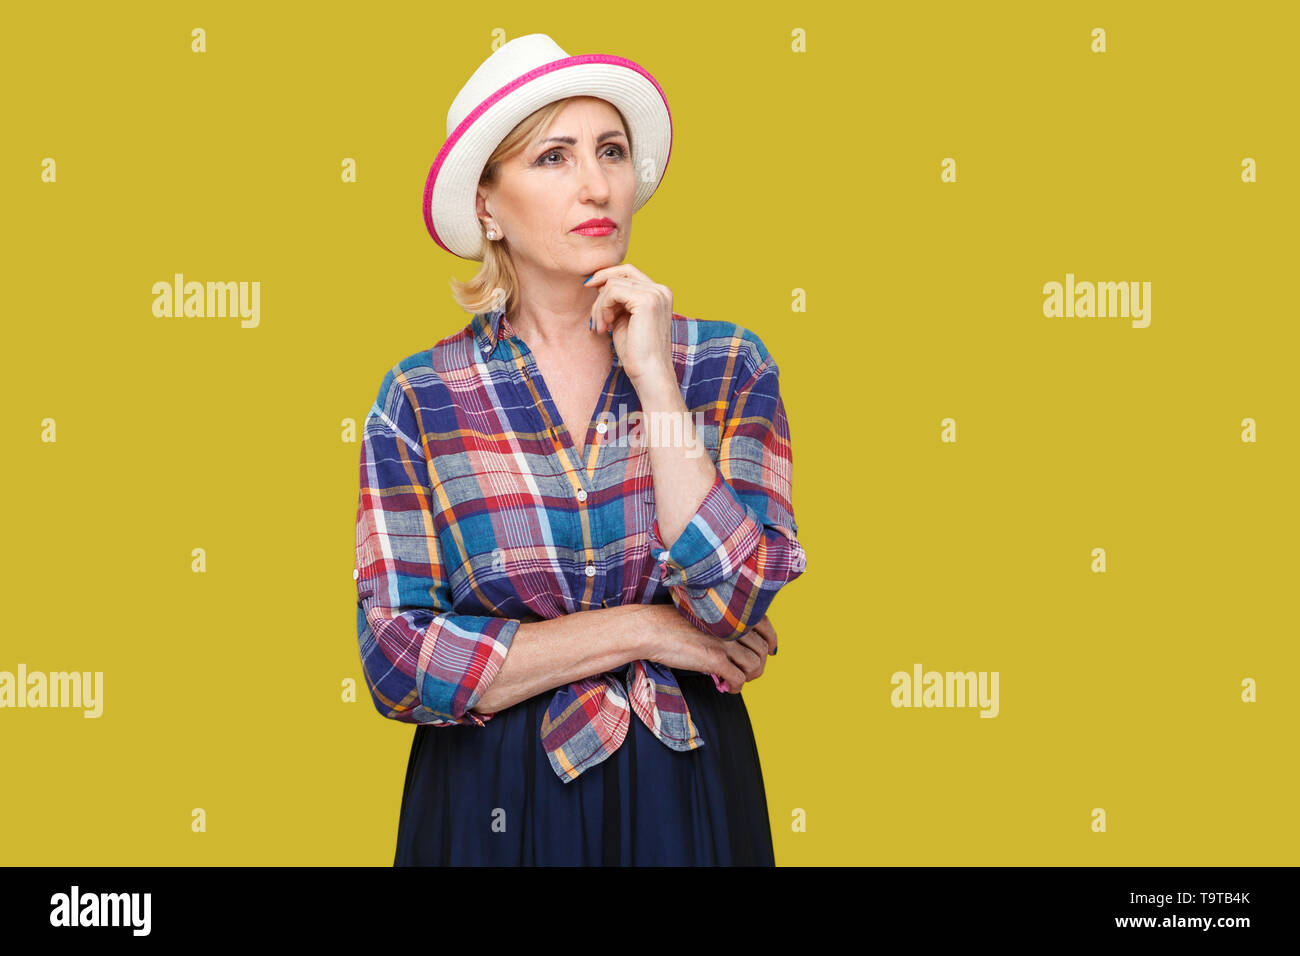 Portrait of serious thoughtful modern stylish mature woman in casual style with white hat standing, touching her chin, query and thinking what to do.  - Stock Image